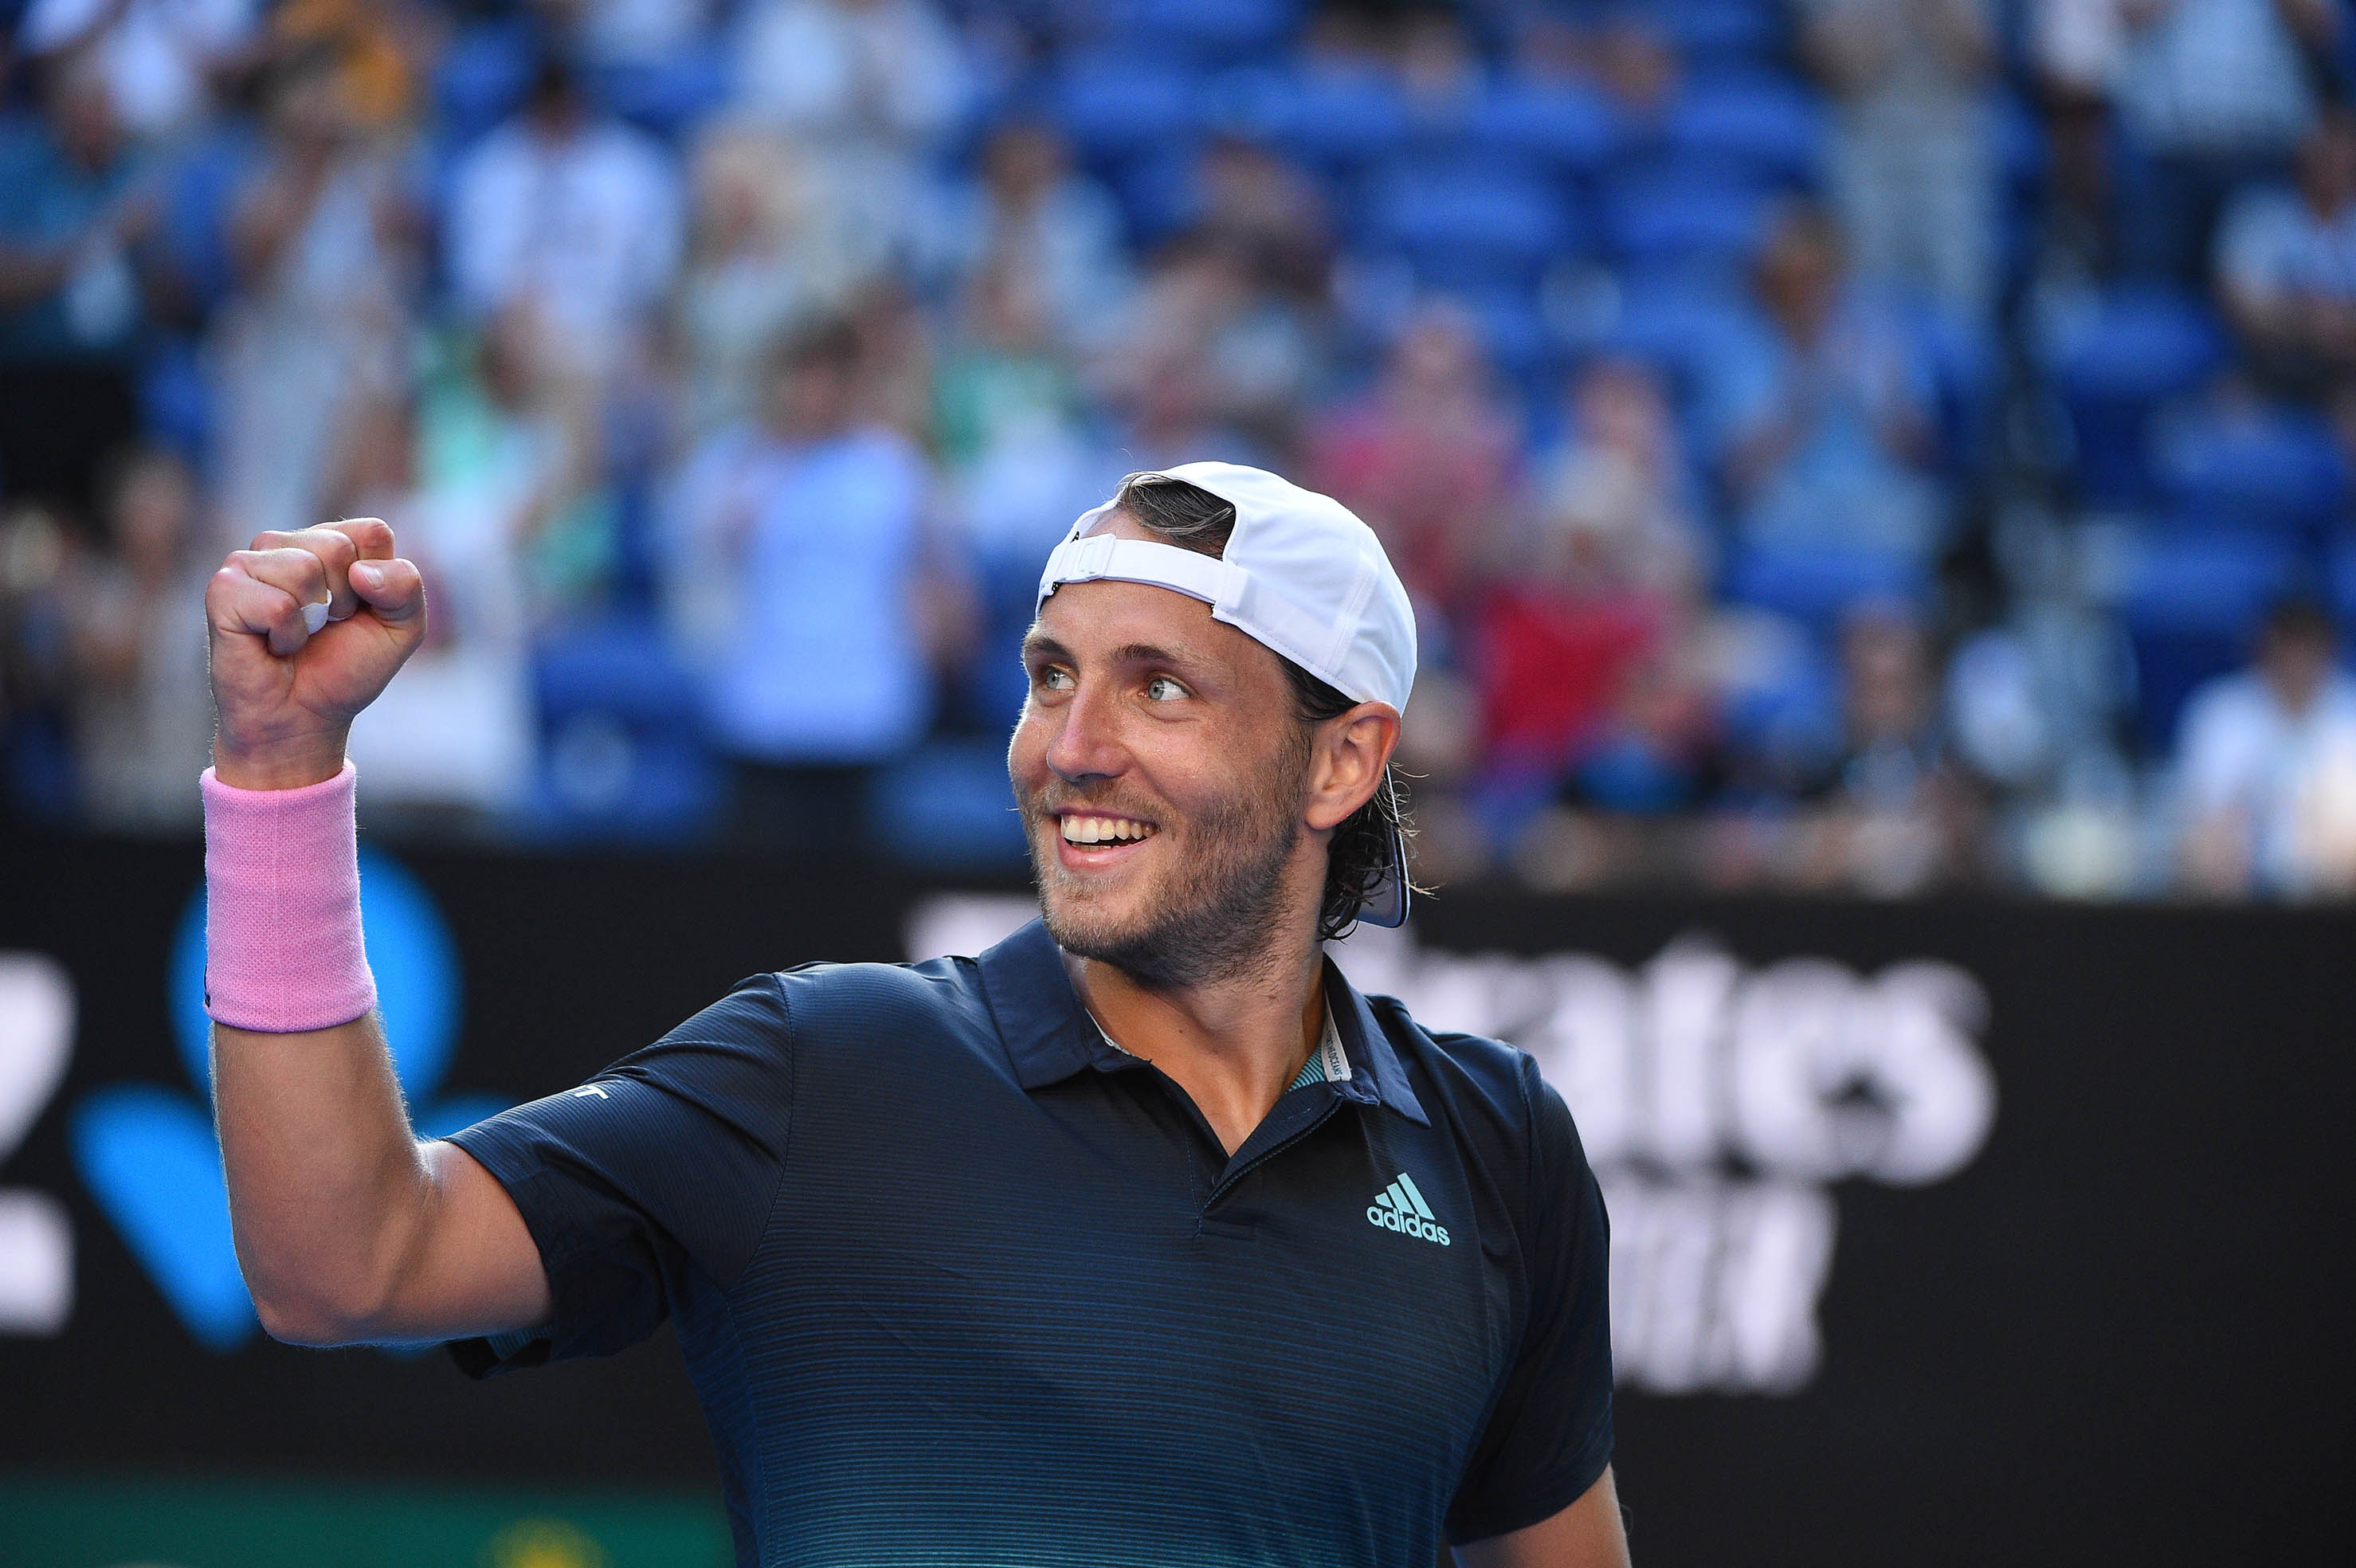 Lucas Pouille smiling and fistpumping after his victory in the quarters of the 2019 Australian Open